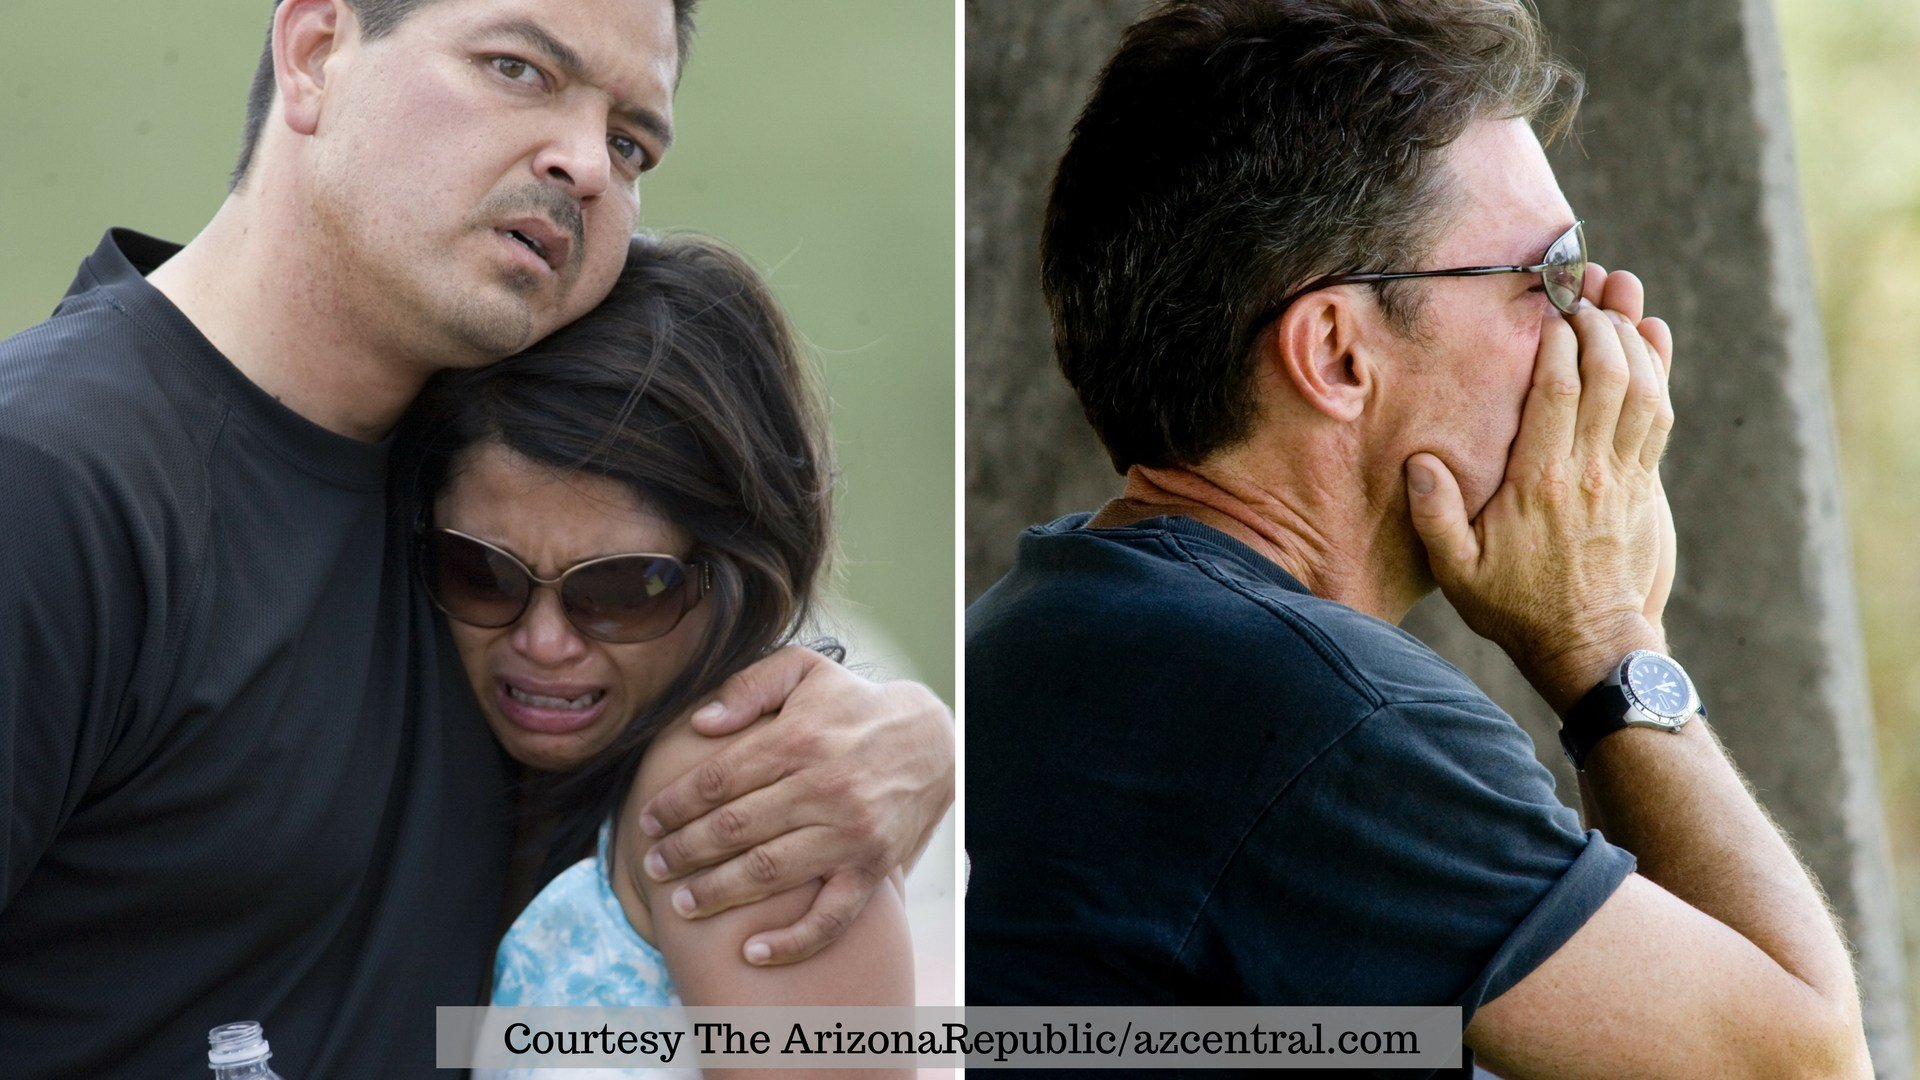 Covering those who cover the news: The Arizona Republic/azcentral.com captured the raw grief of 3TV photographer Adrian Campa, reporter Tess Rafols (left) and reporter Mike Watkiss, all of whom were at the scene that day. (Photos used with permission)